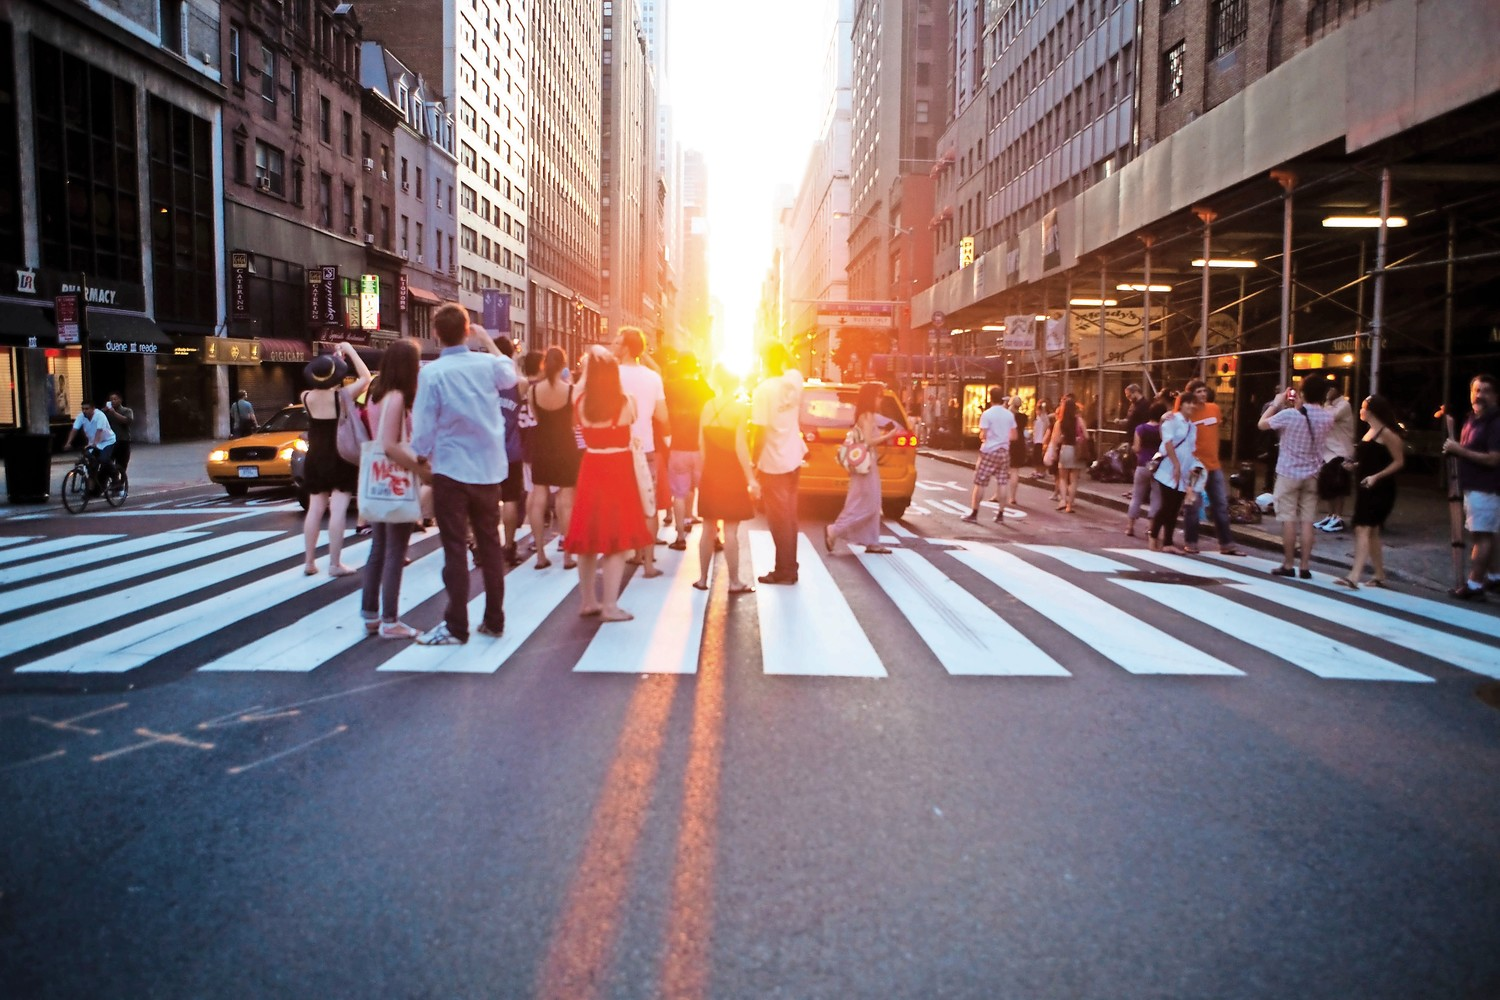 There's no mystery on how Manhattanhenge was built, but it doesn't take away the beauty that happens when the sun peeks through the tall buildings of Manhattan at specific points during the year.